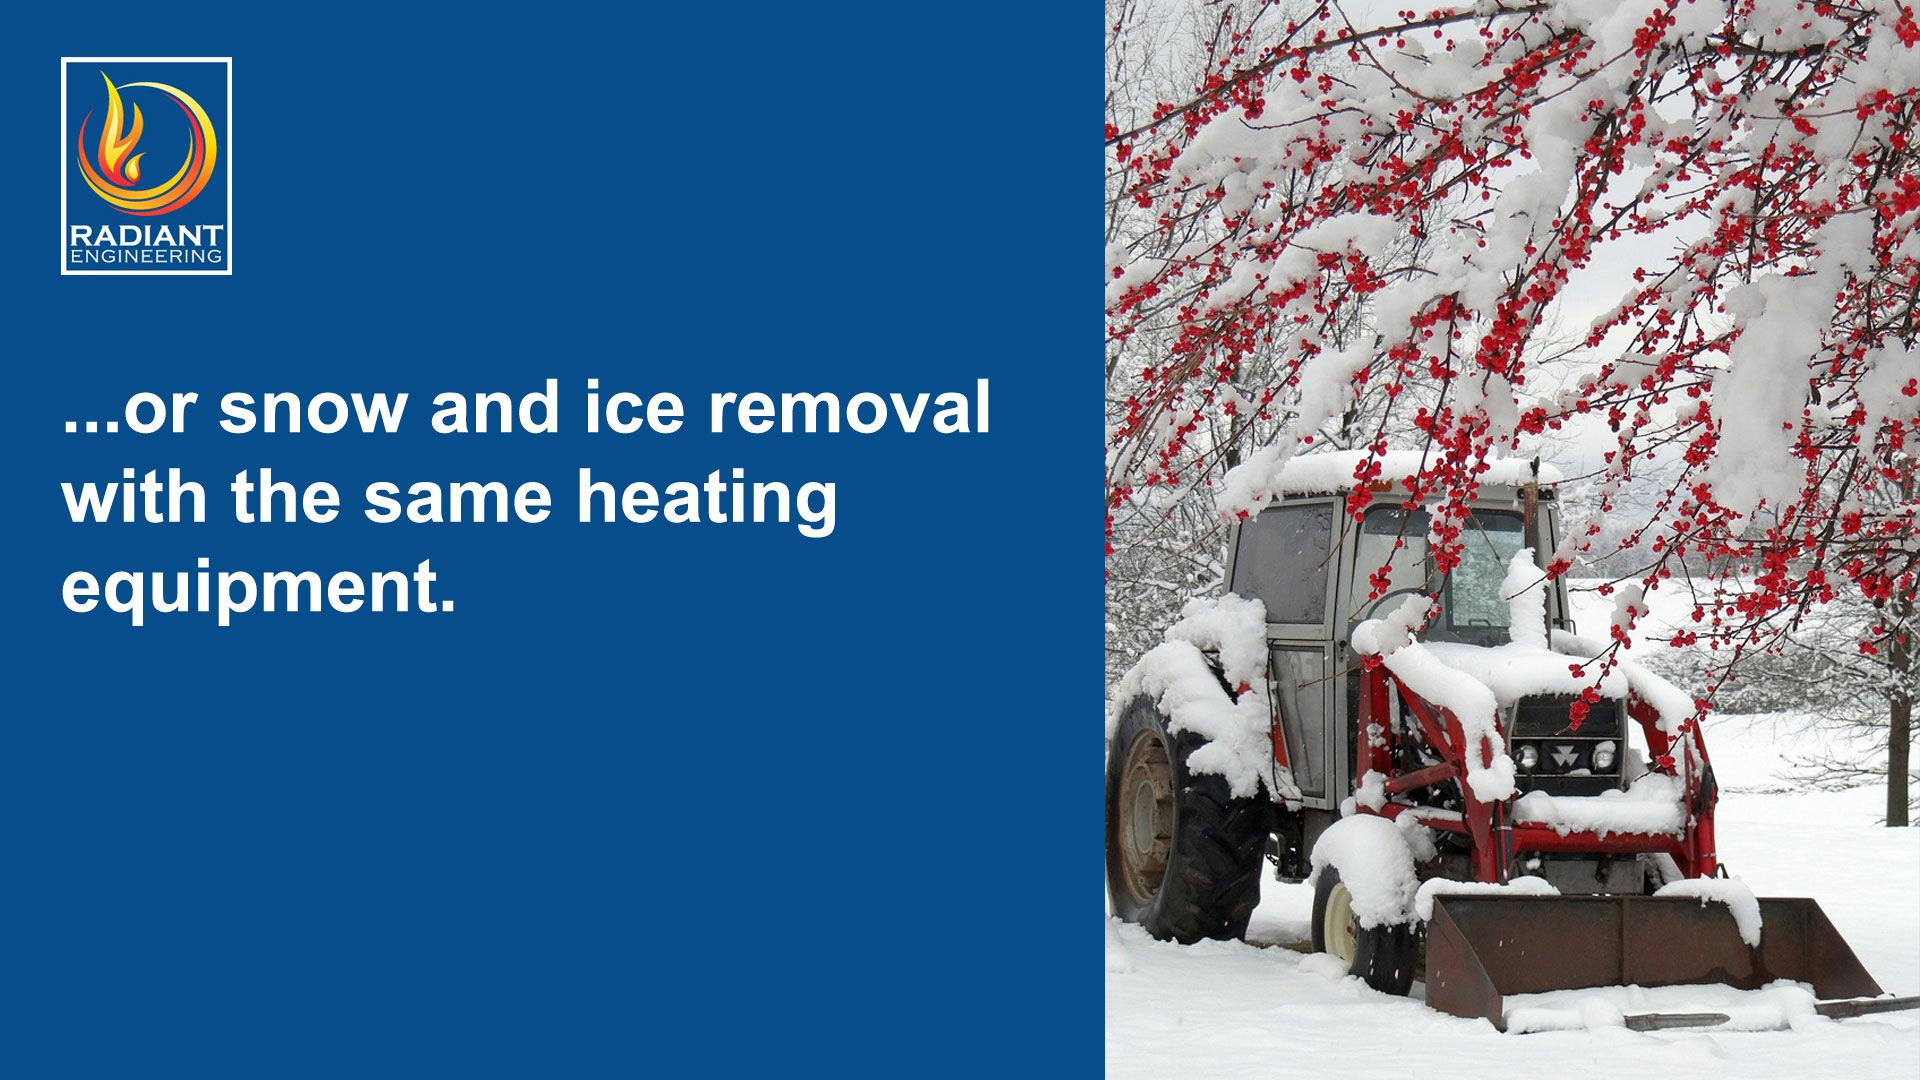 Radiant heating for hot water, space heating, and snow